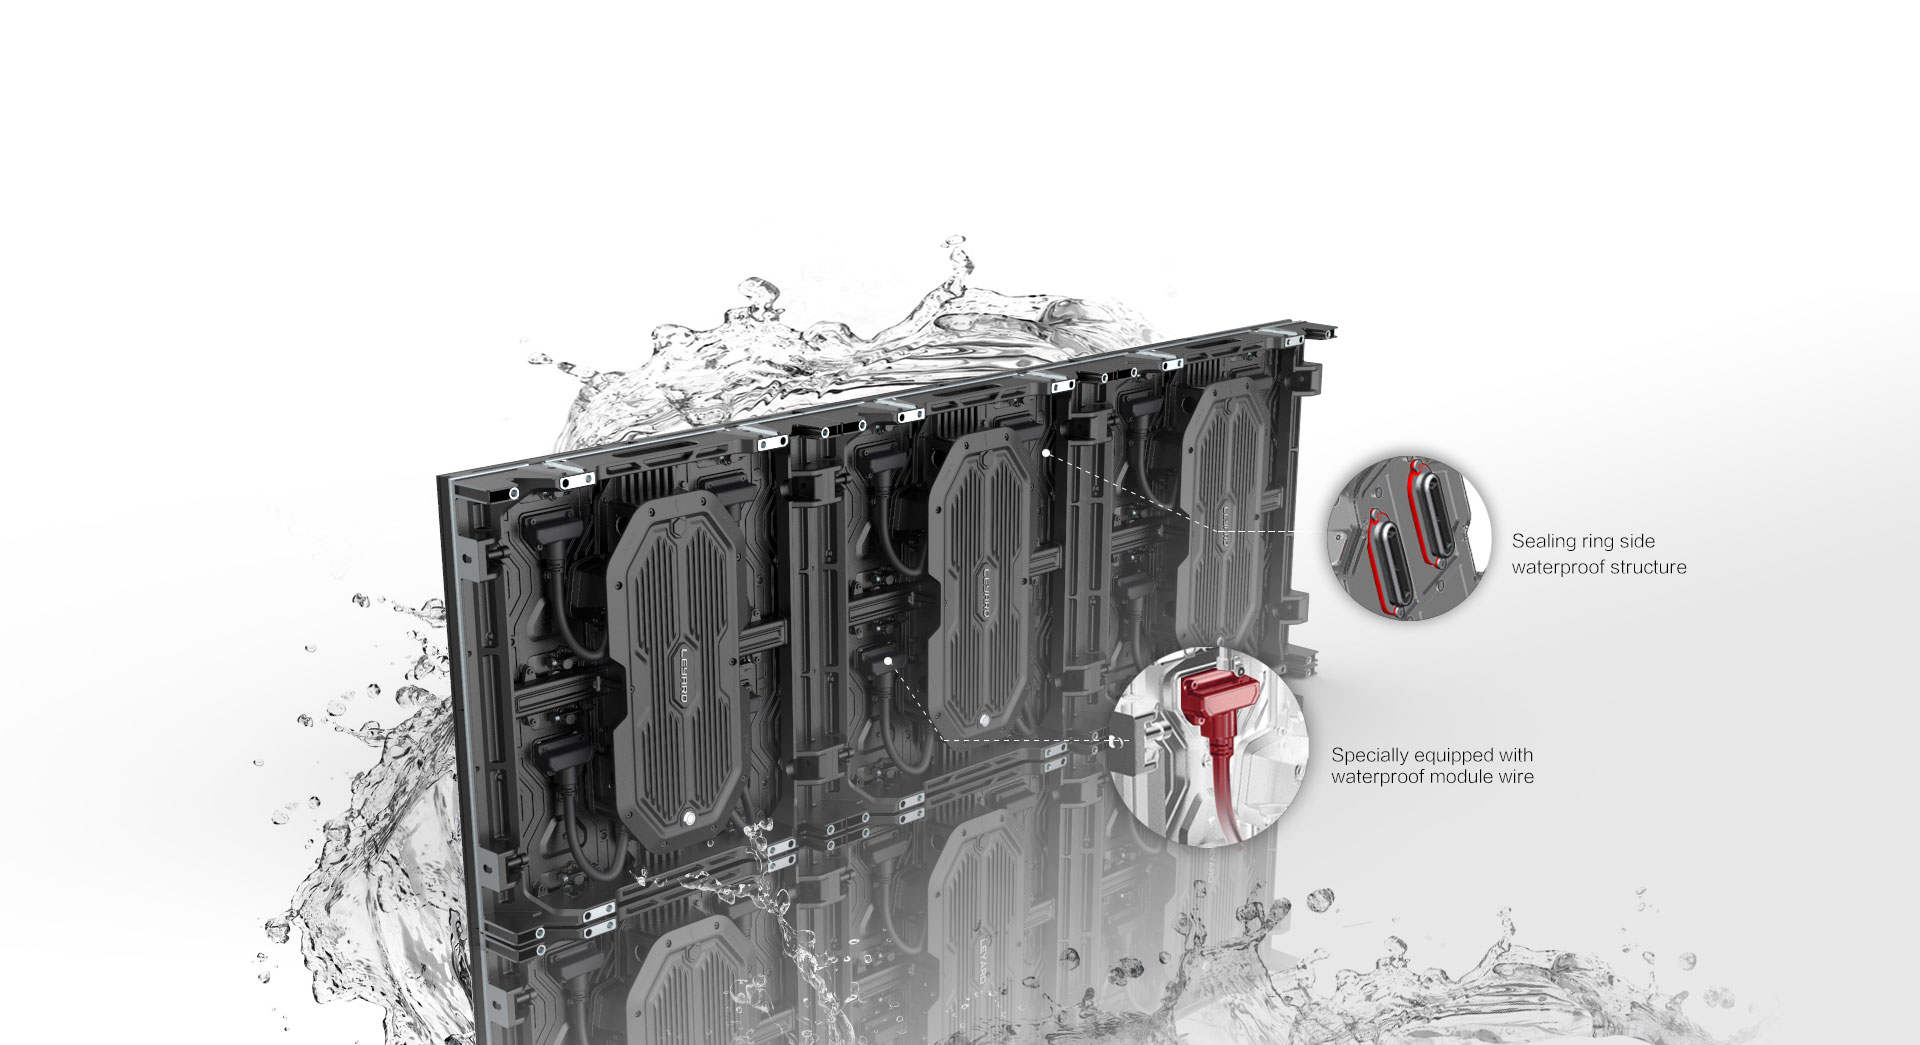 Ultra-high protection | IP66 waterproof structure design